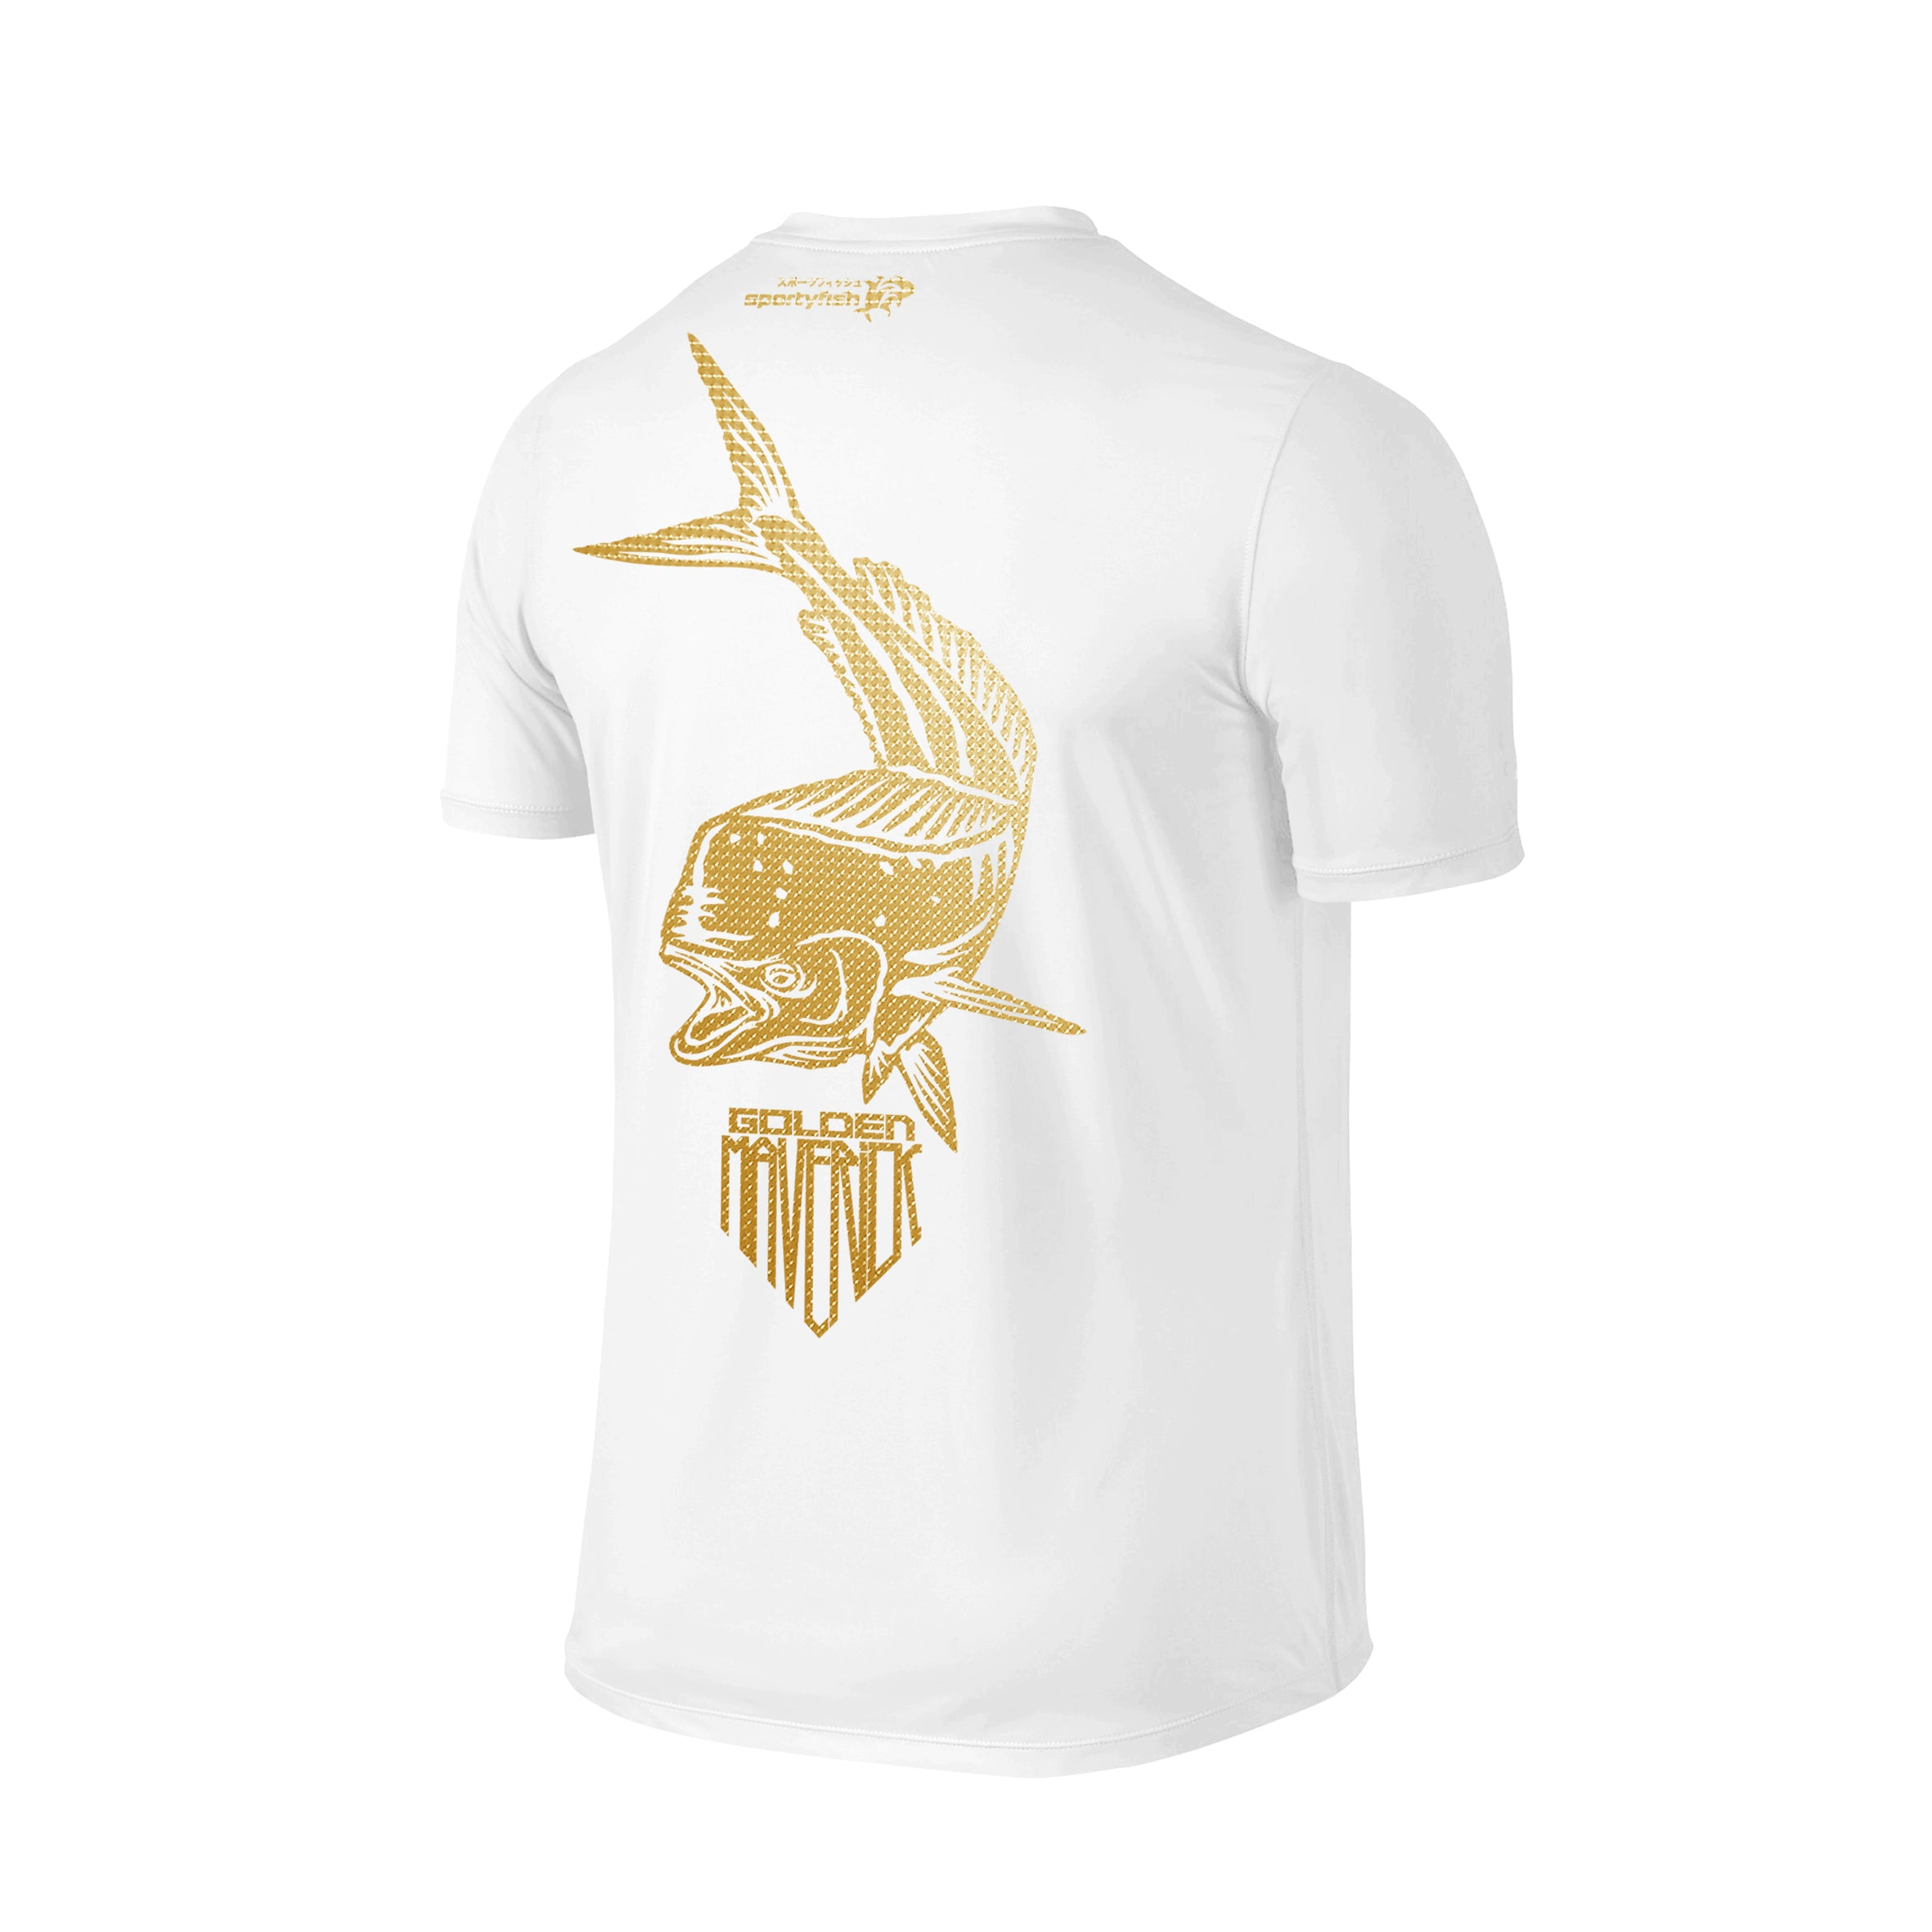 SportyFish Shield Series Classic White T-shirt(back view) Gold Print: Mahi Mahi